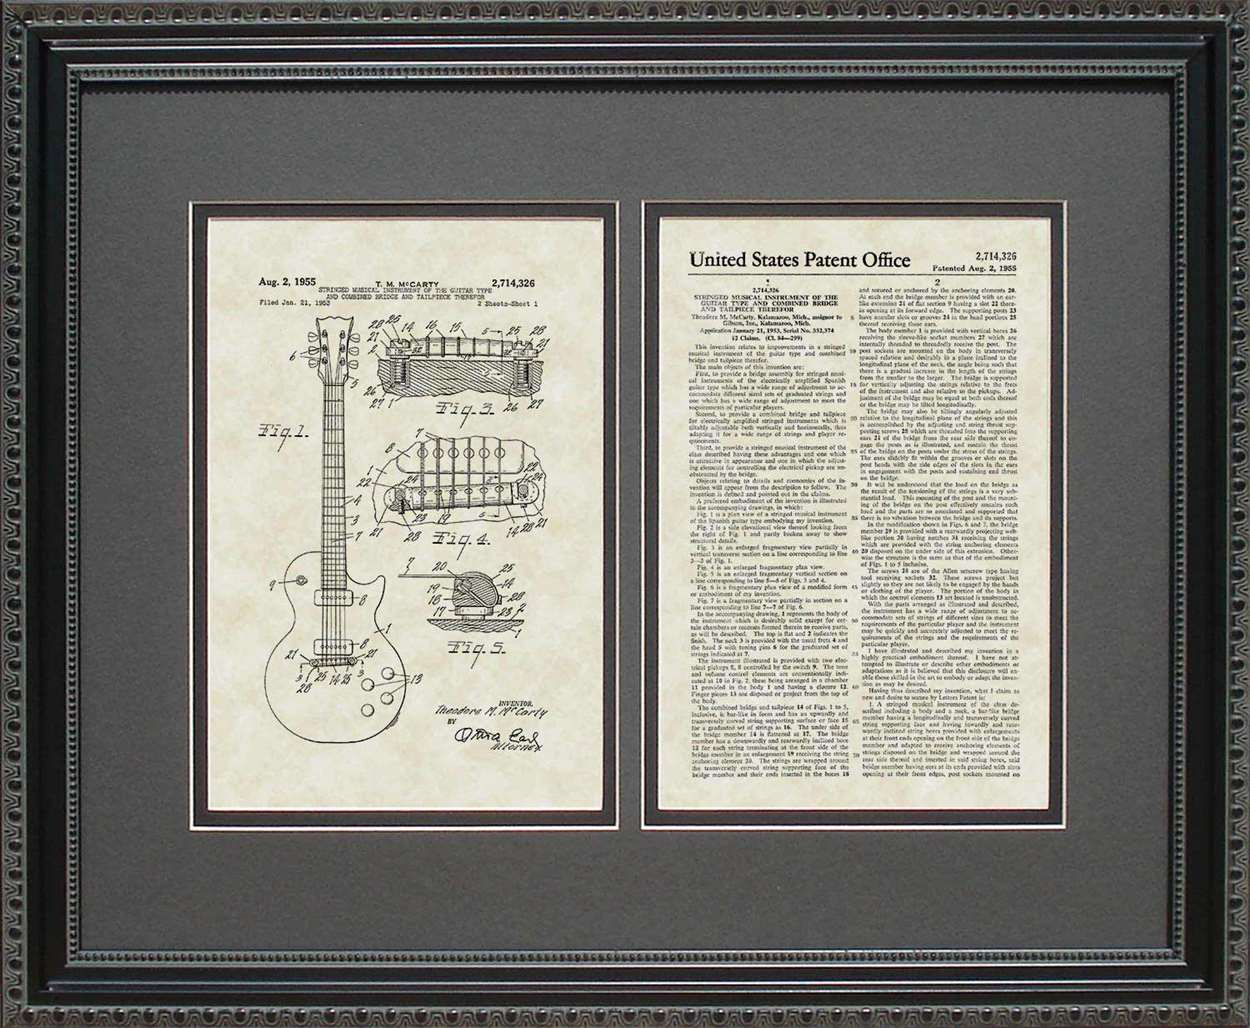 Electric Guitar Patent, Art & Copy, McCarty, 1955, 16x20